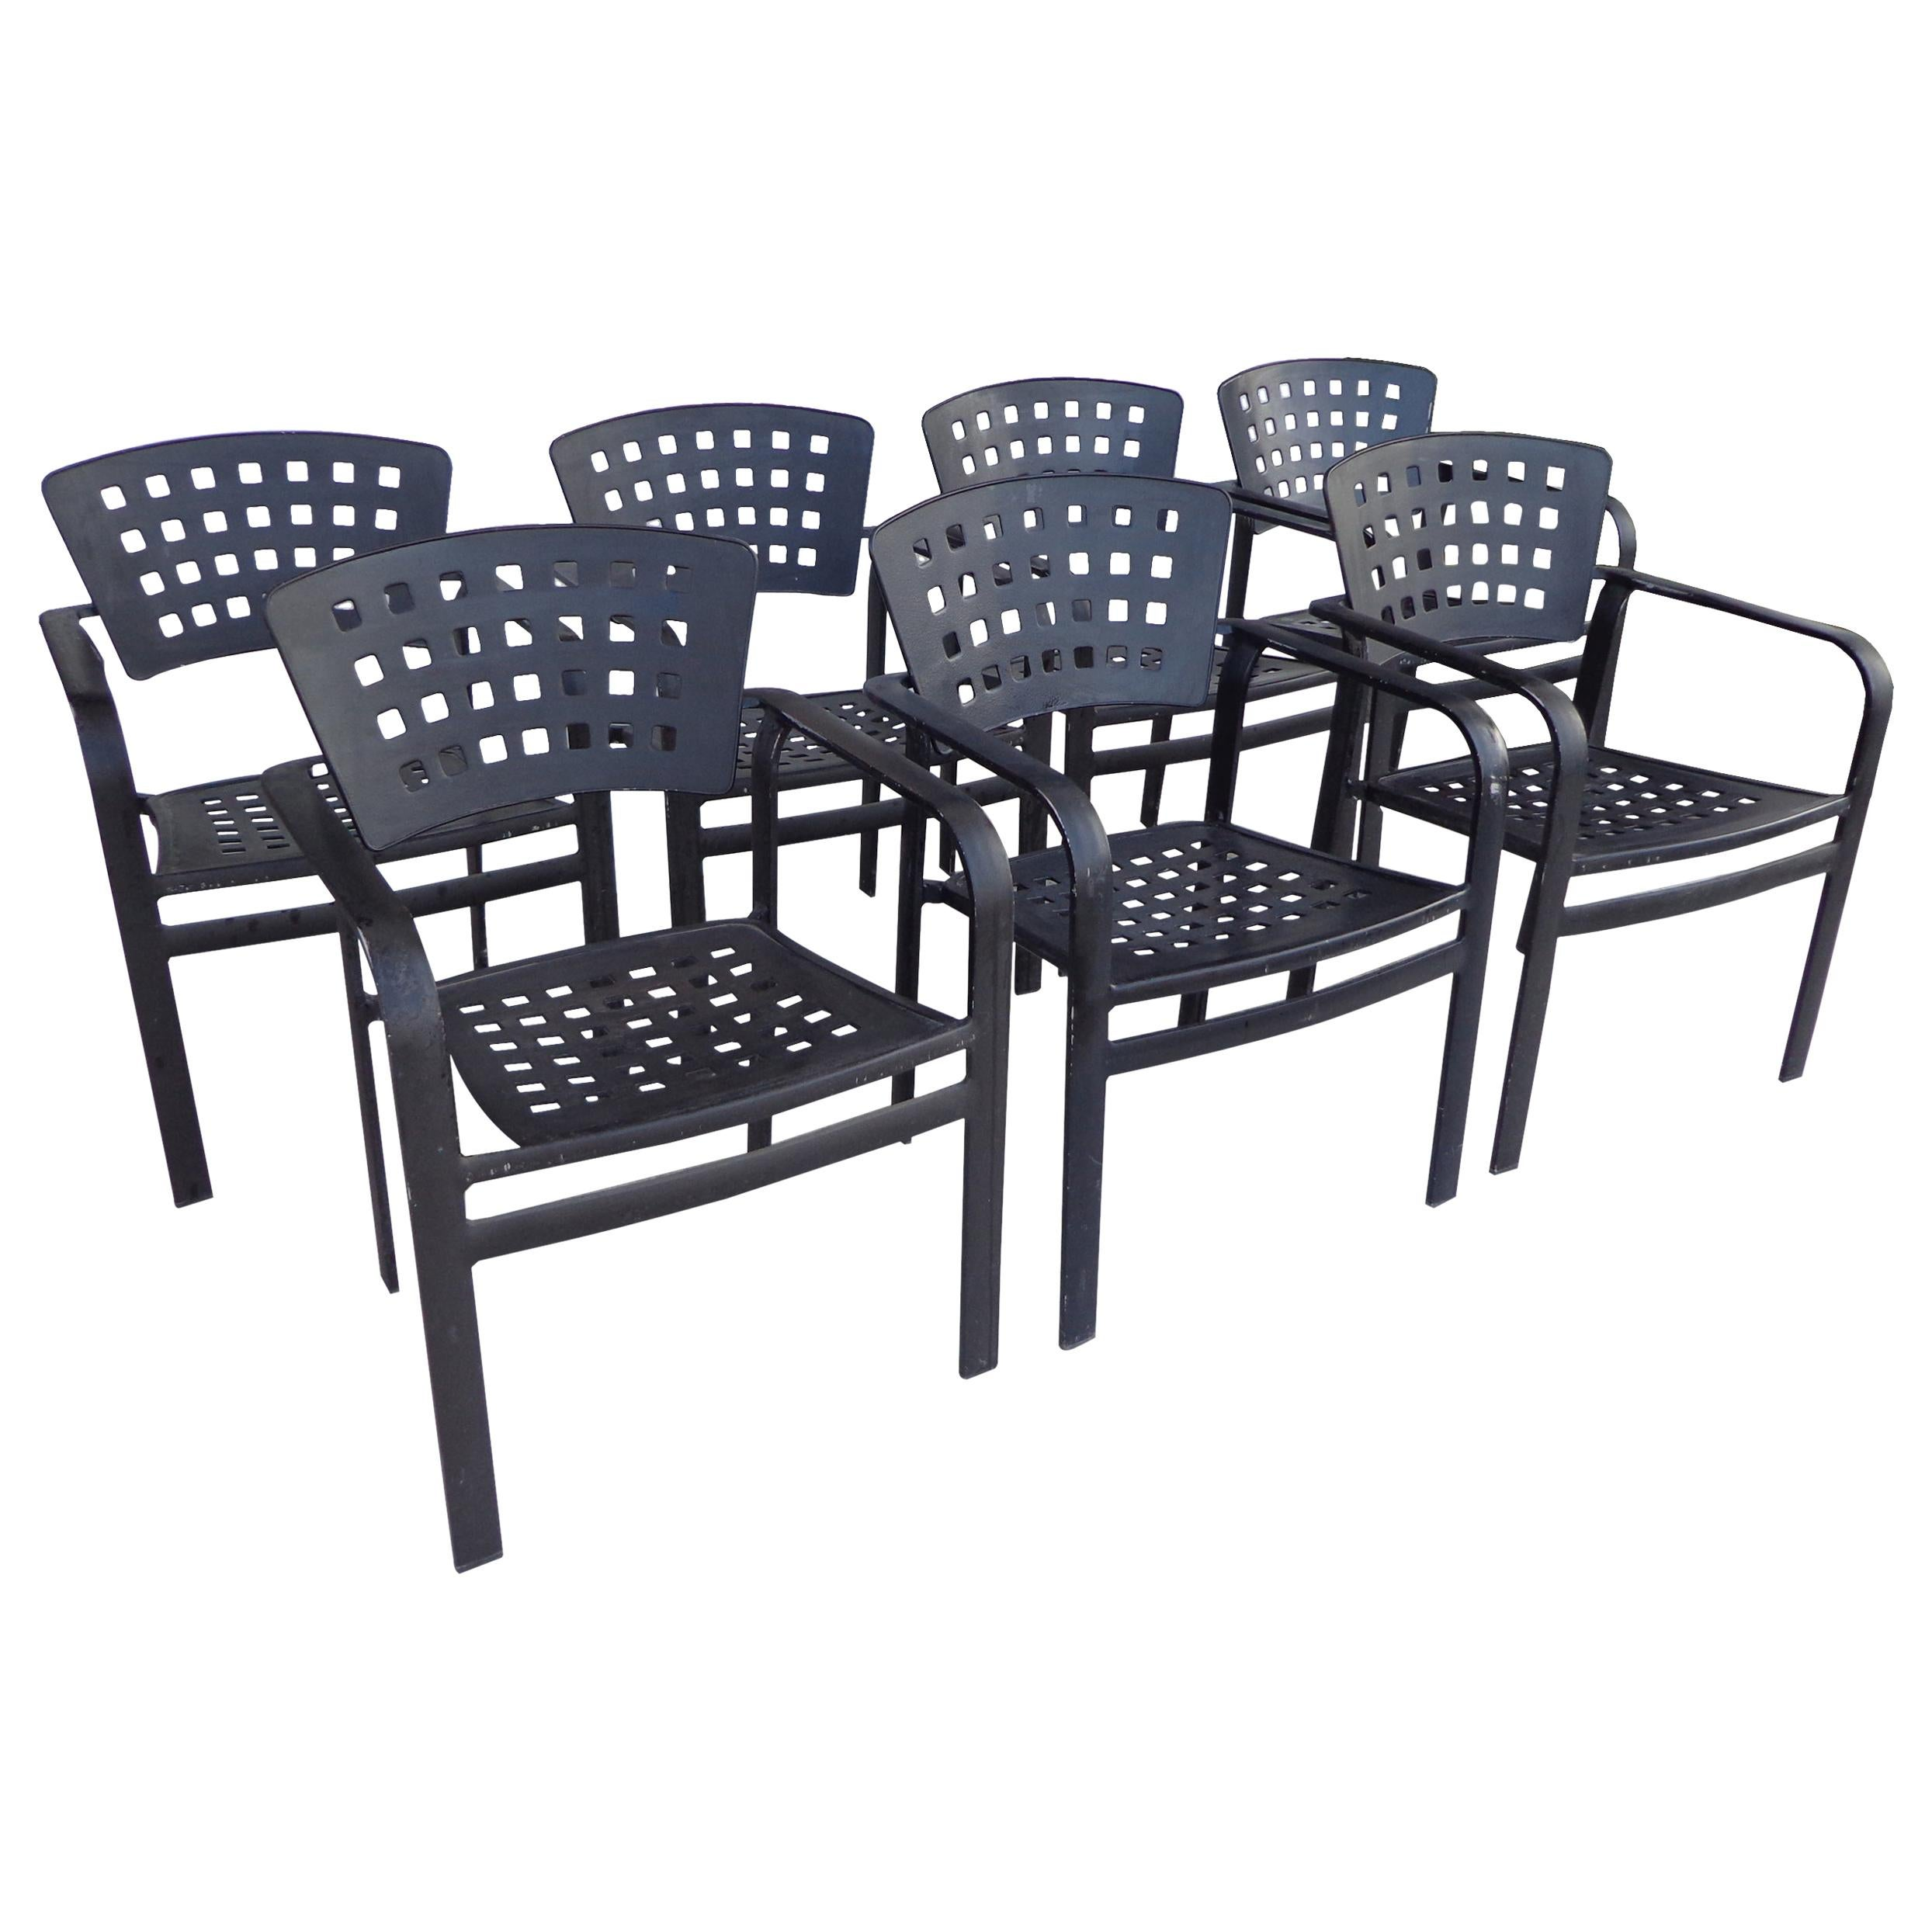 Impressions Aluminum Stacking Outdoor Chair by Tropitone